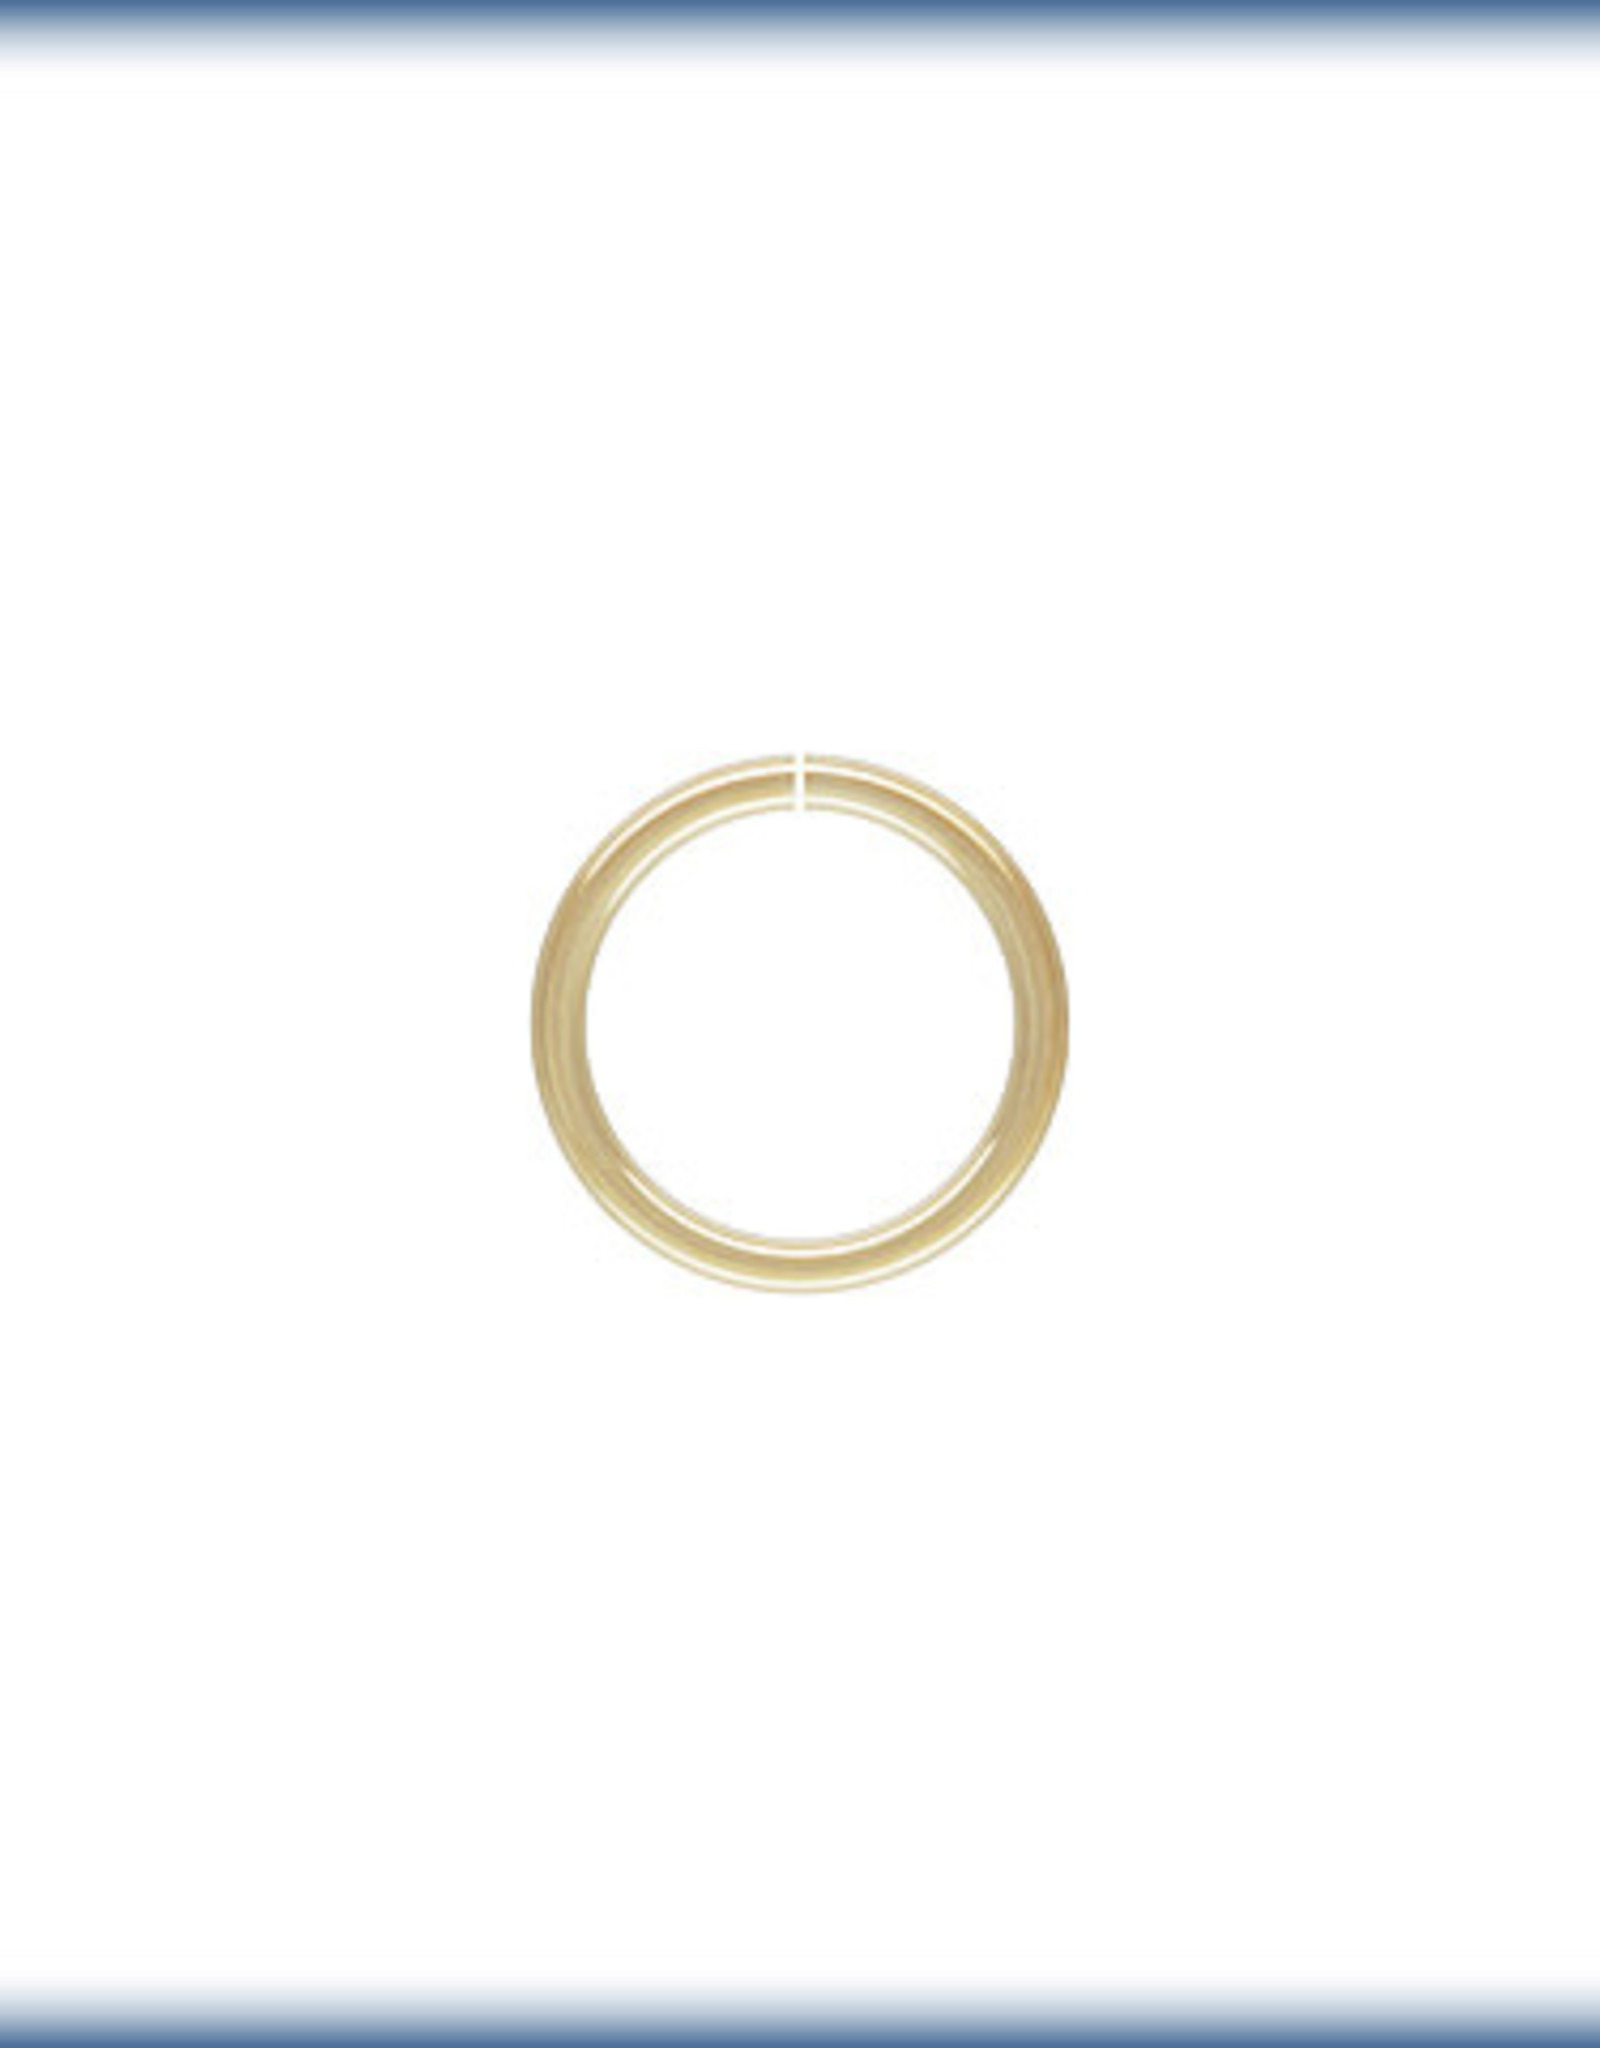 6mm Jump Rings 20ga 14k Gold Filled Qty 10